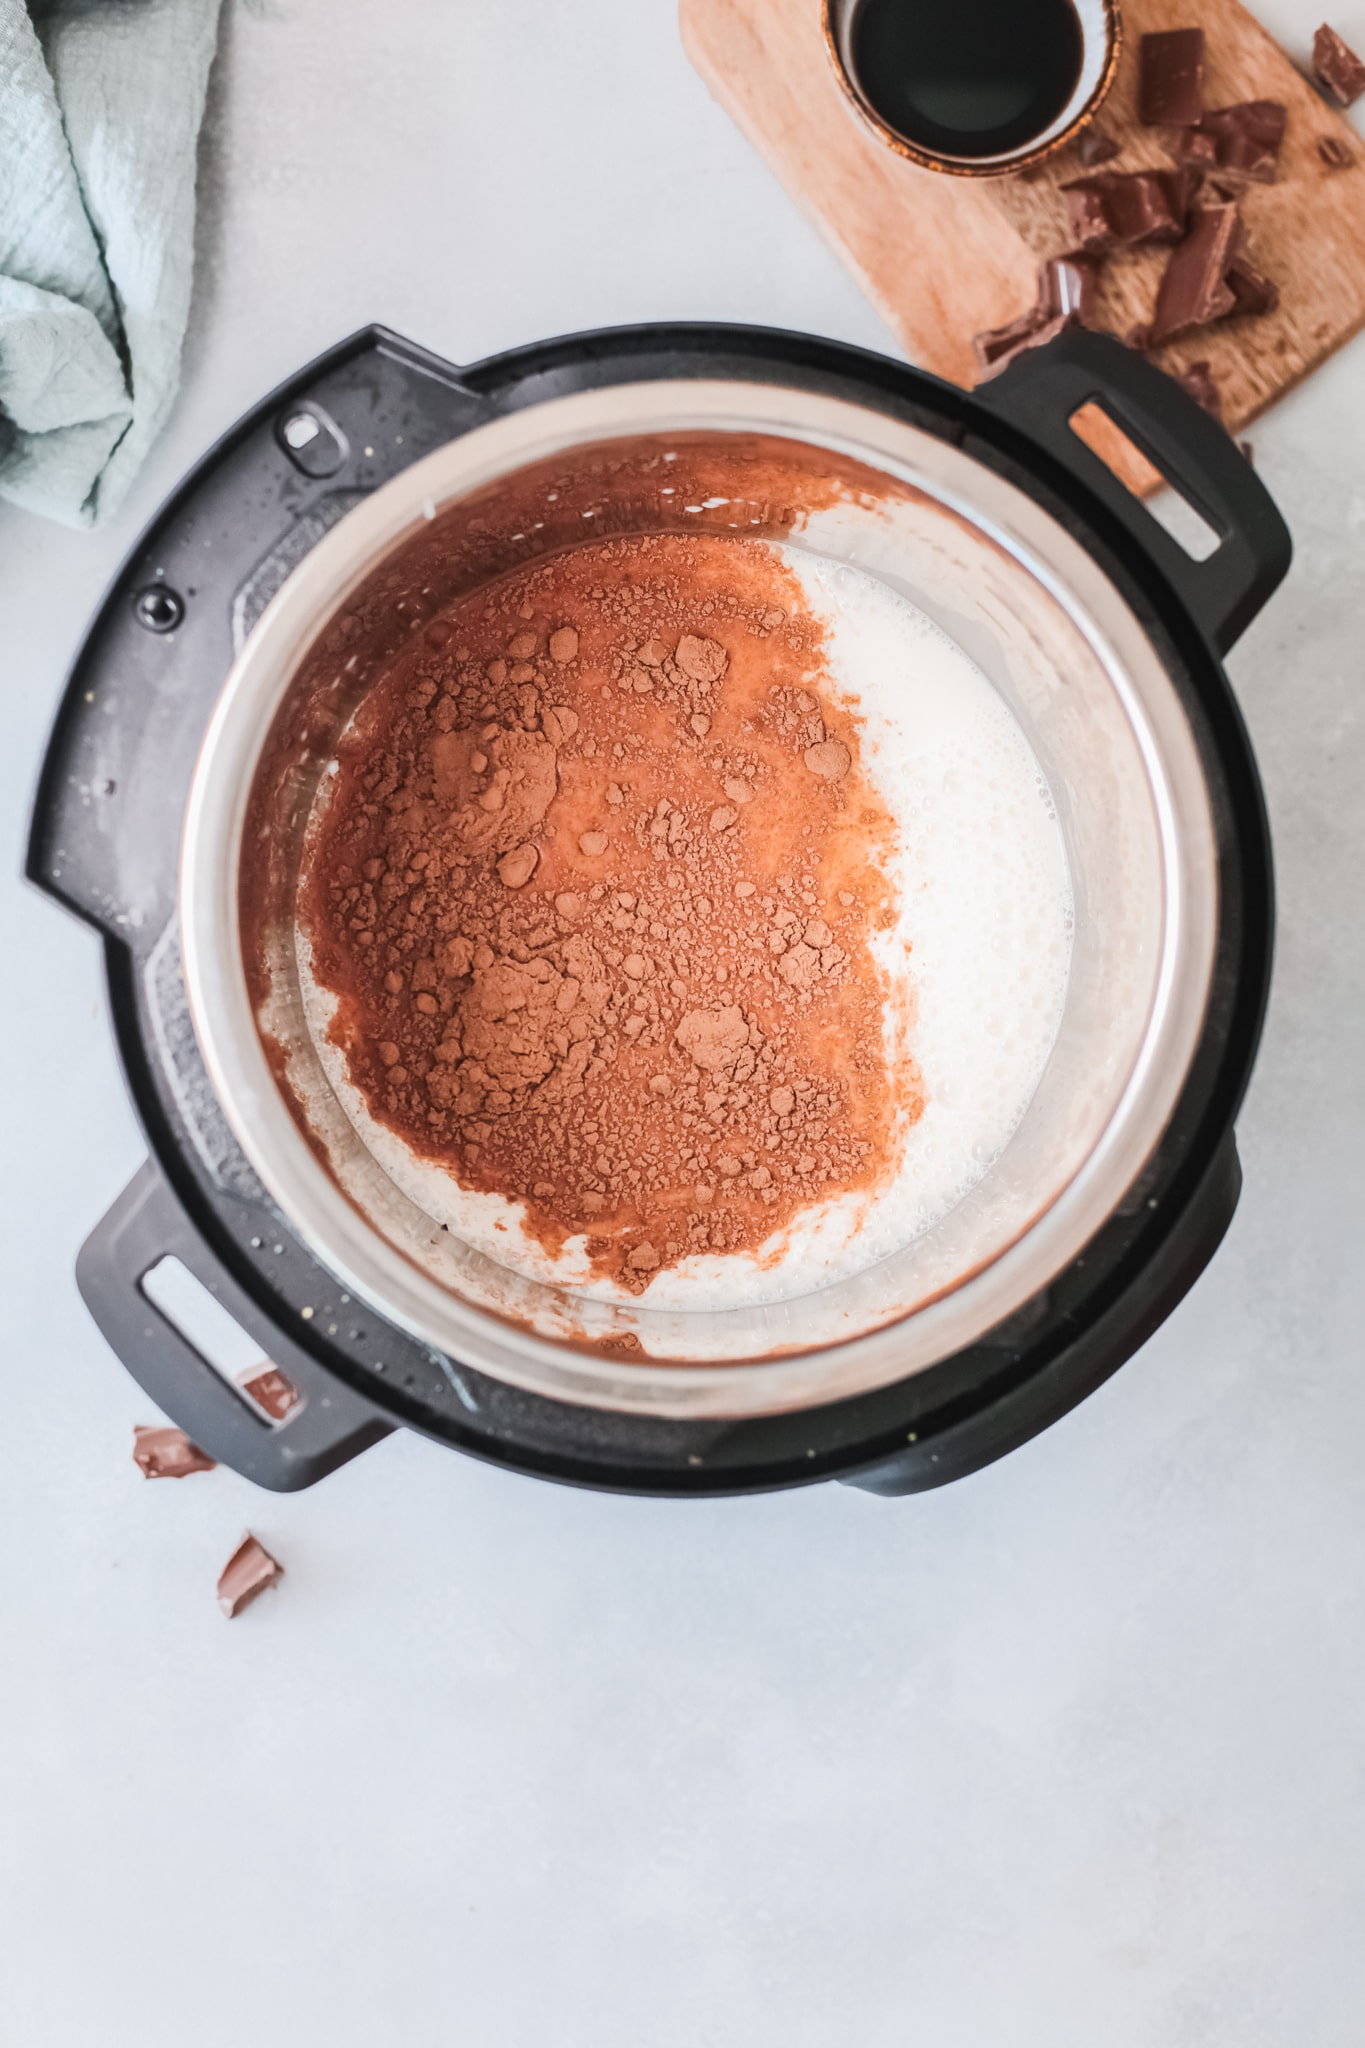 Instant Pot Salted Caramel Hot Chocolate Step 2. Silky smooth, creamy and decadent, this Instant Pot Salted Caramel Hot Chocolate is an instant family favorite. Made in either the Instant Pot or Slow Cooker this festive holiday drink is perfect for any occasion.